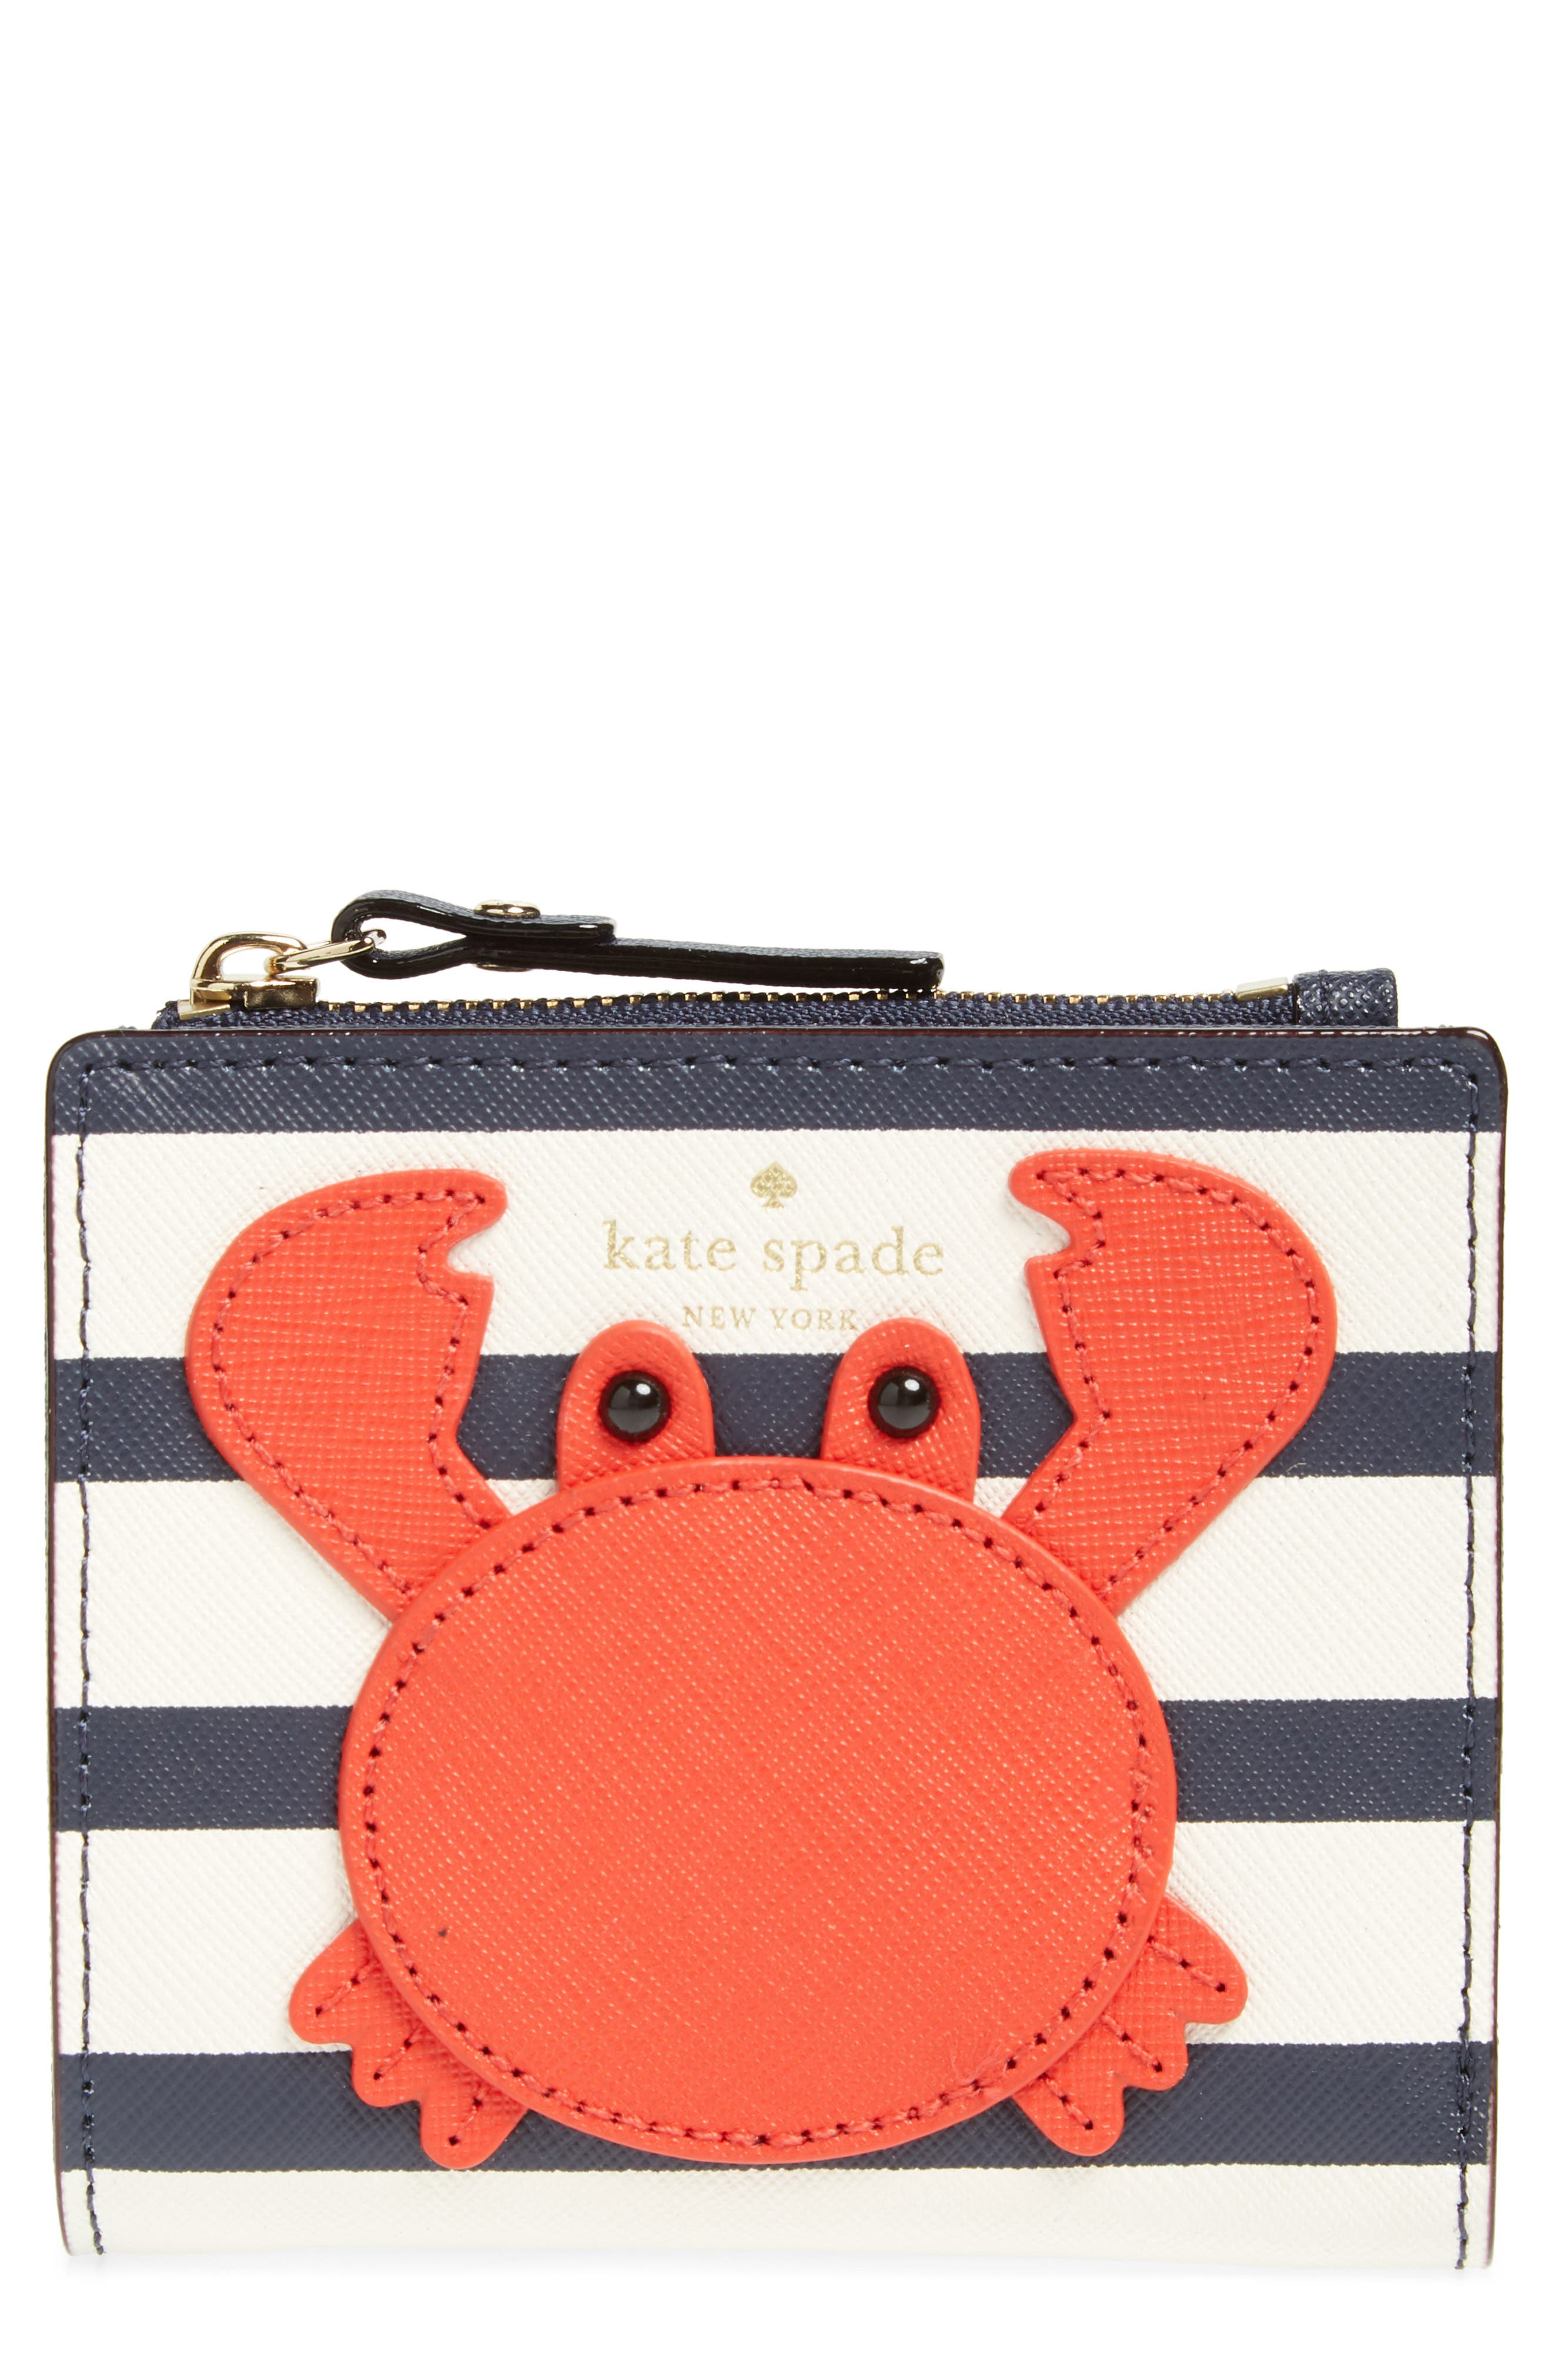 shore thing - stripe adalyn leather wallet,                         Main,                         color, Multi